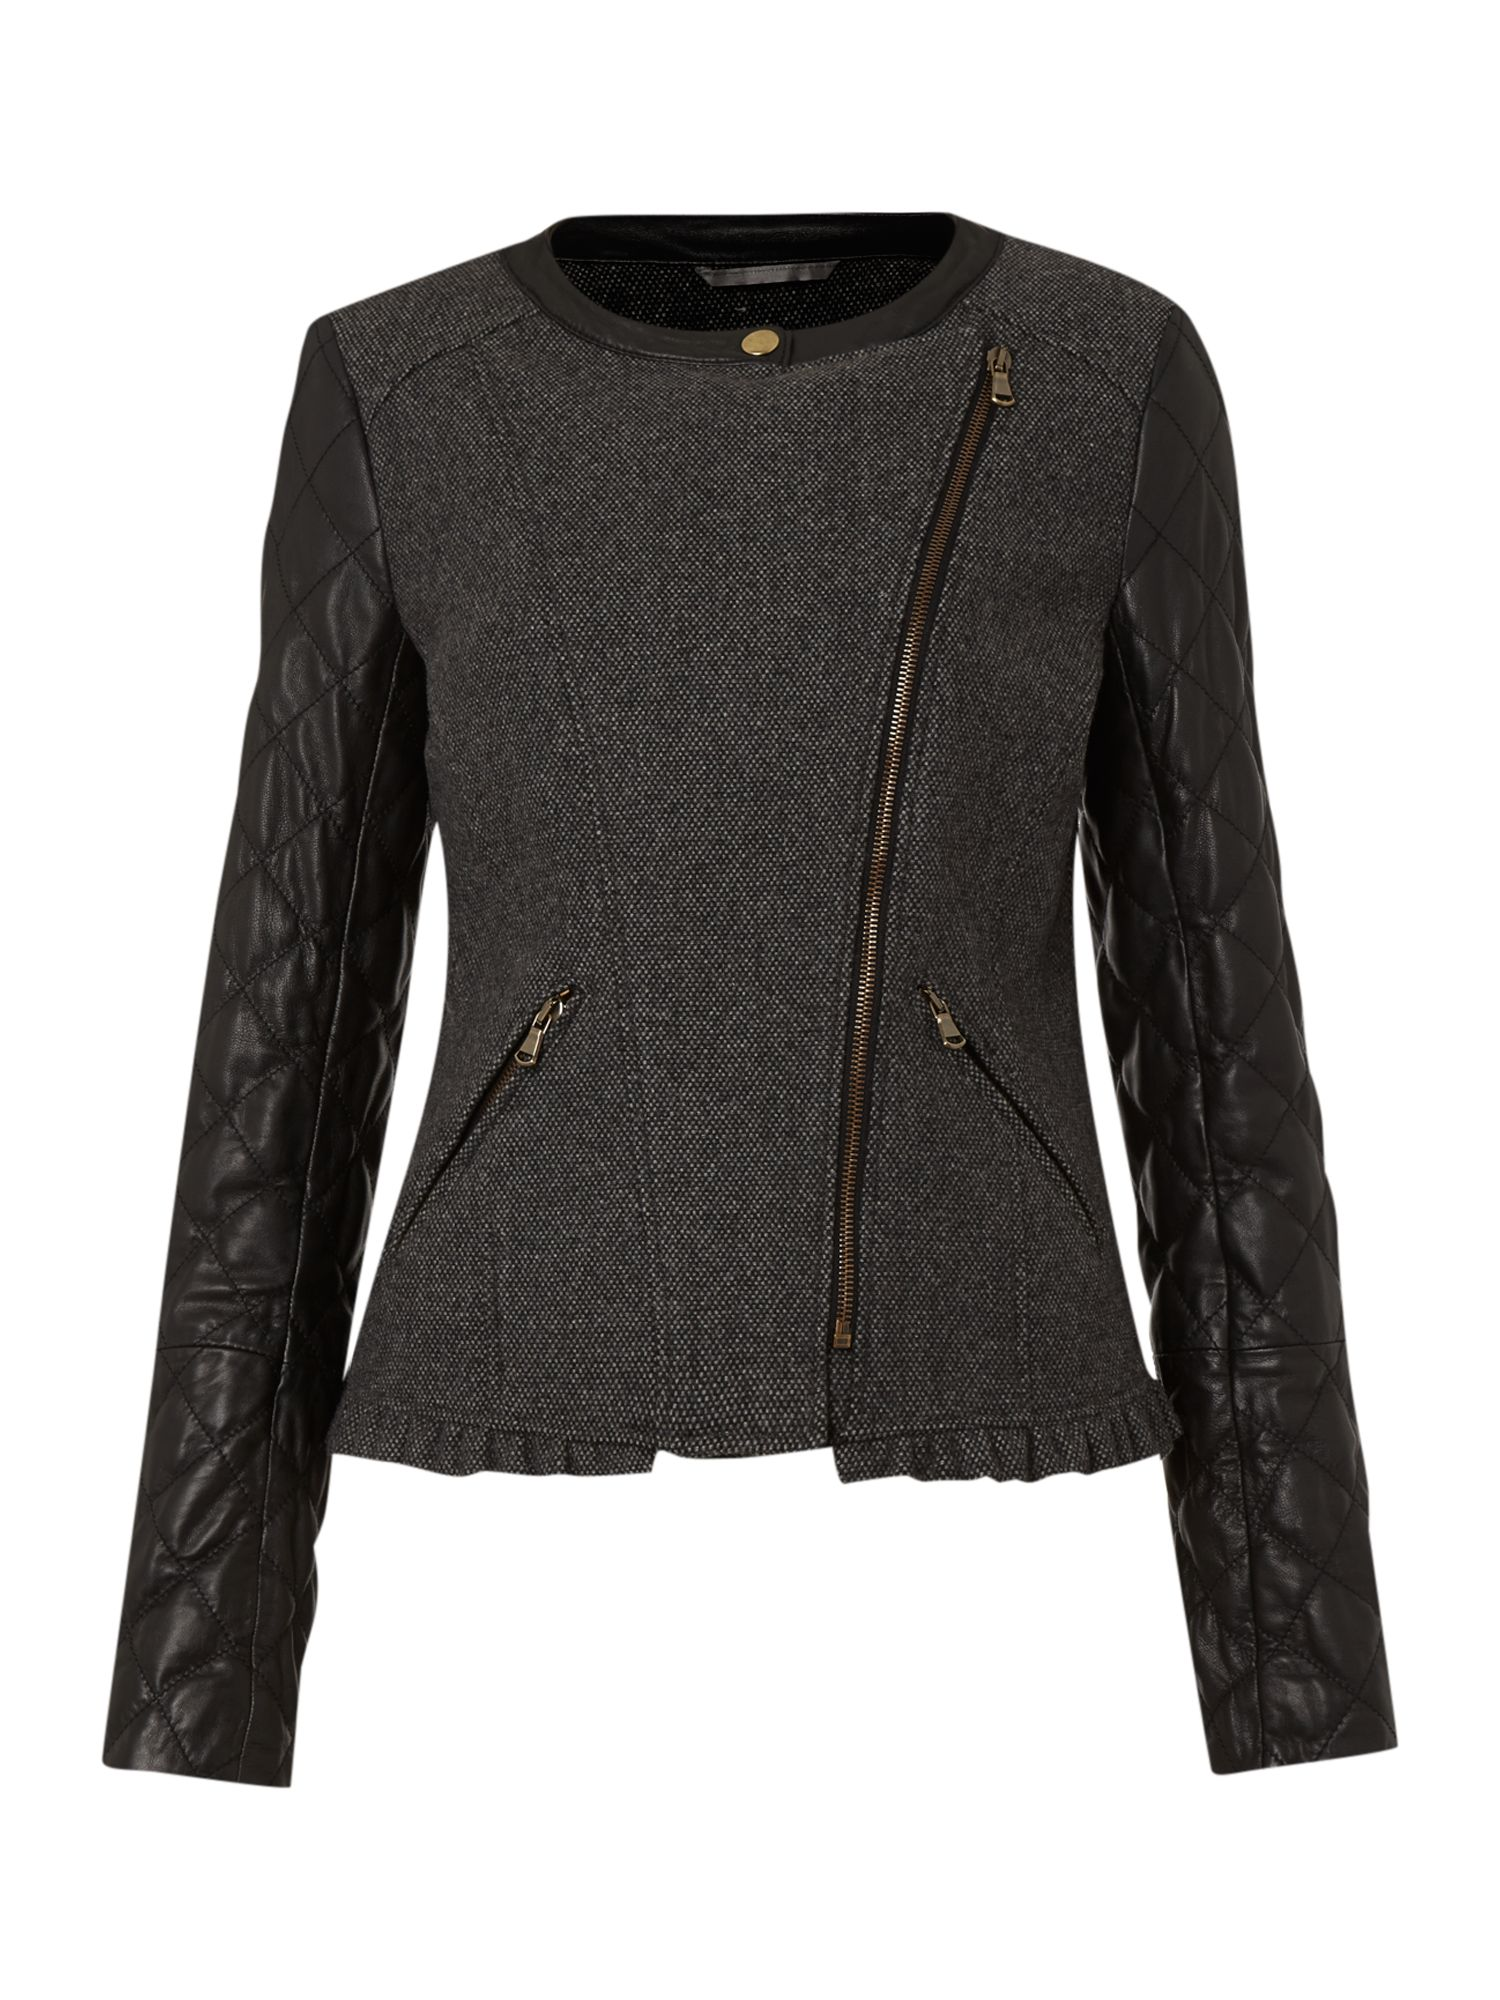 Biker jacket with quilted sleeves